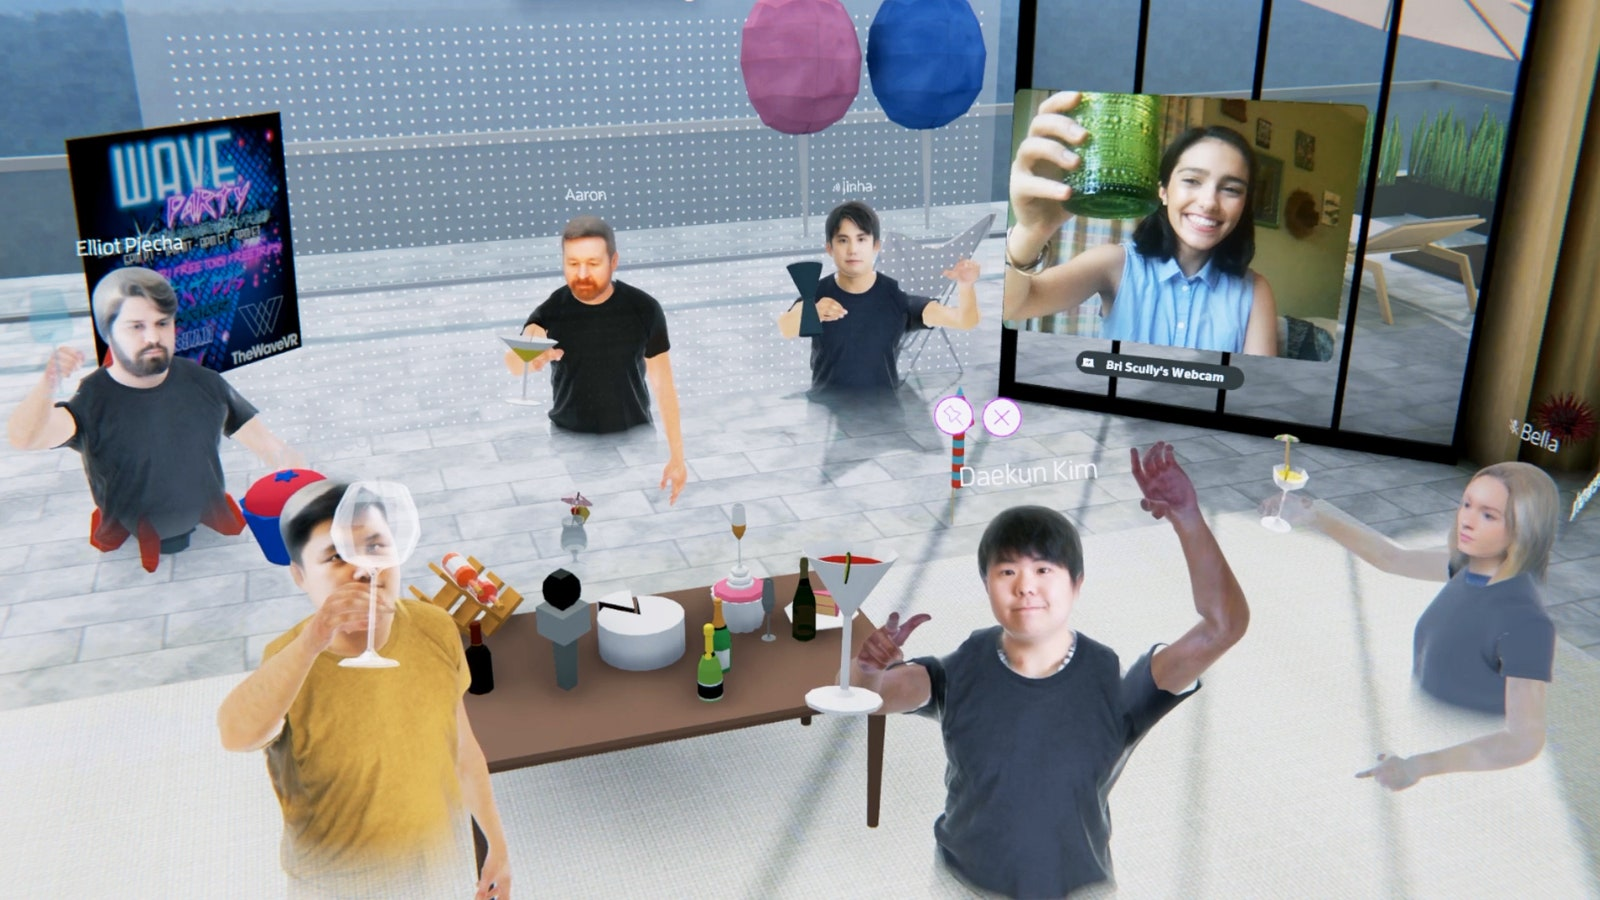 This week's Spatial update lets the 3D avatars of participants with headsets interact with the 2D webcam feeds of those without headsets.